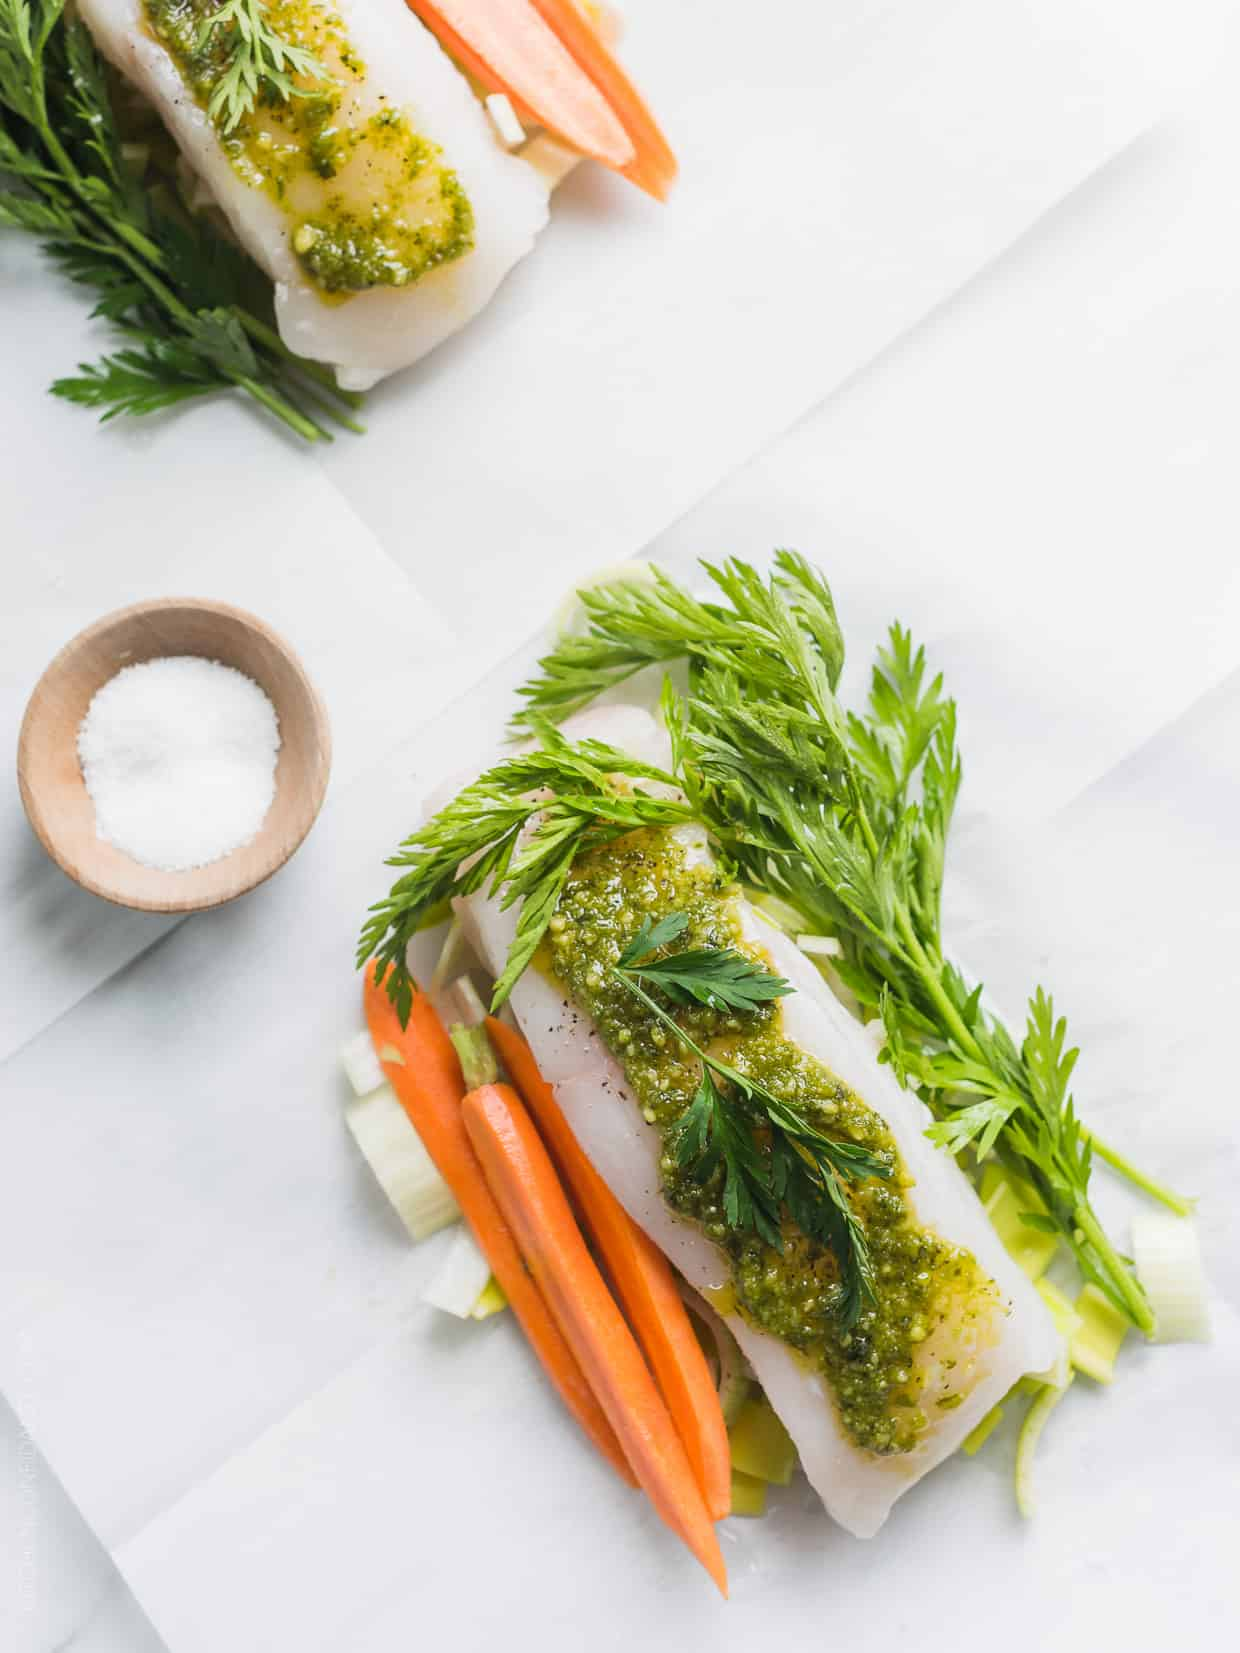 The best part of cooking en papillote? The clean up! Try it in this delicious recipe for Halibut en Papillote with Carrot Top Pesto!